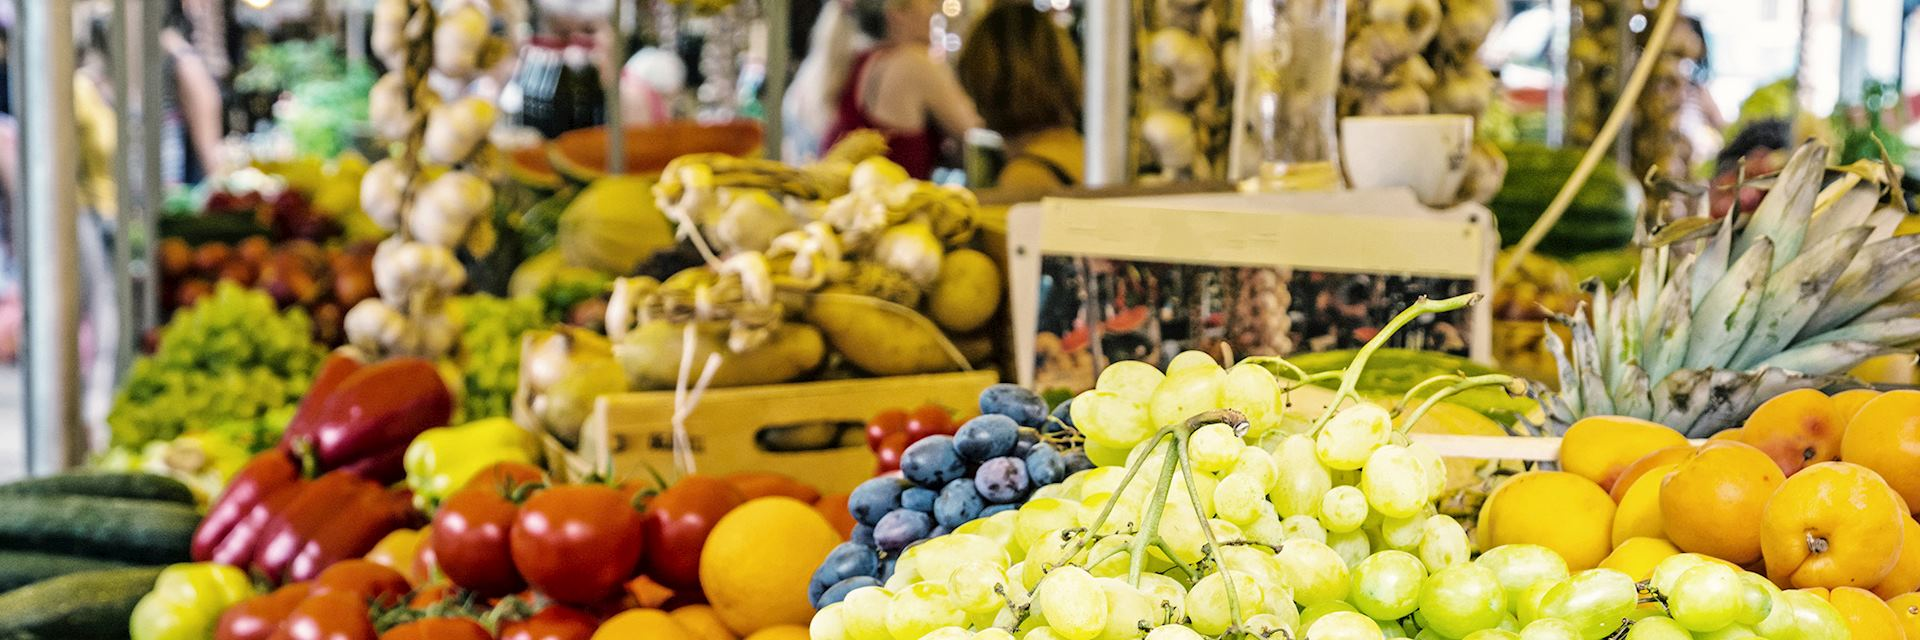 Fresh fruit in market hall, old town Trogir, Croatia